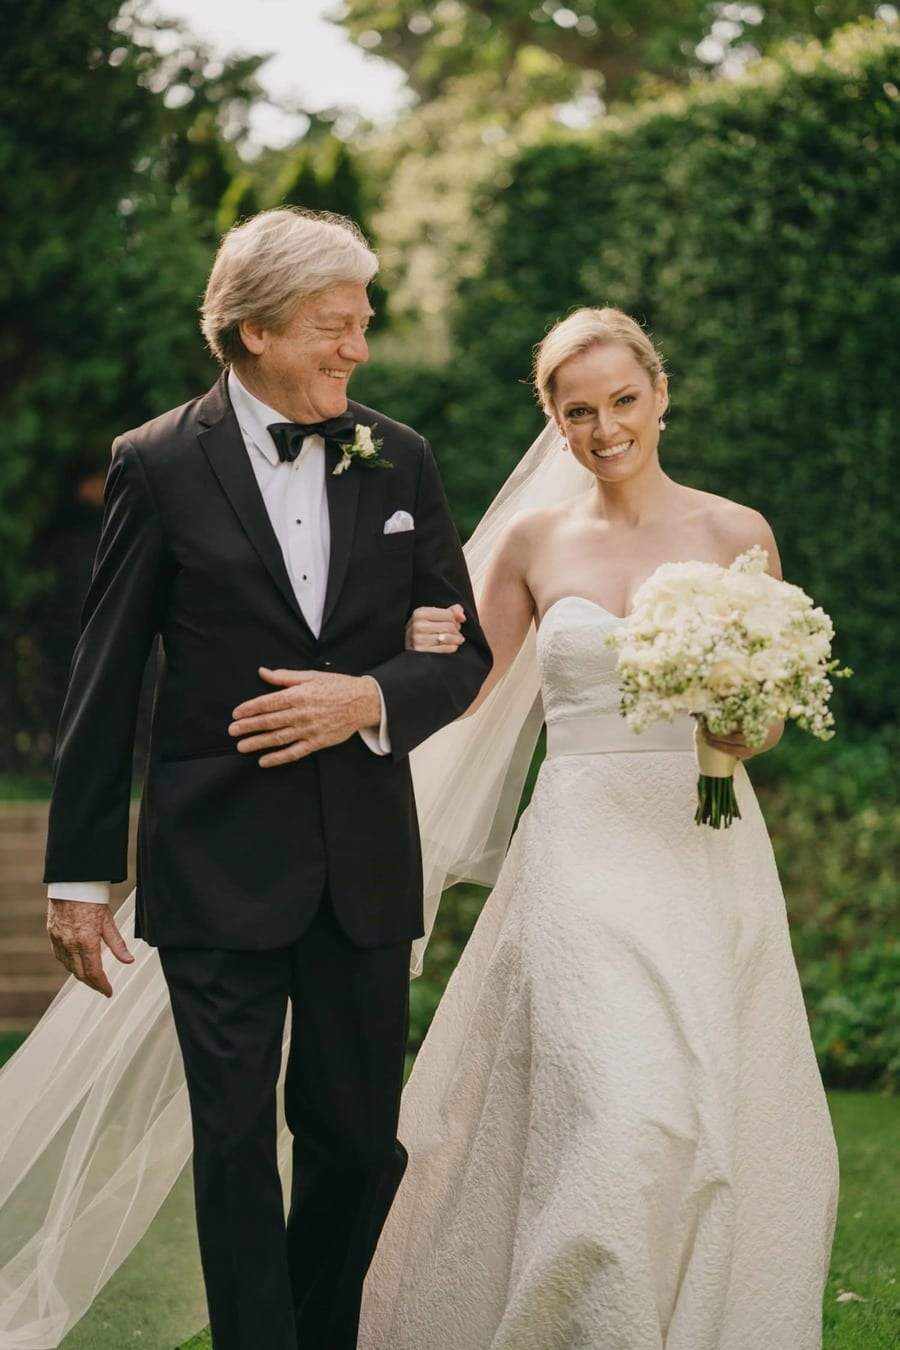 Bride and father walk down aisle during wedding ceremony in the Catskills